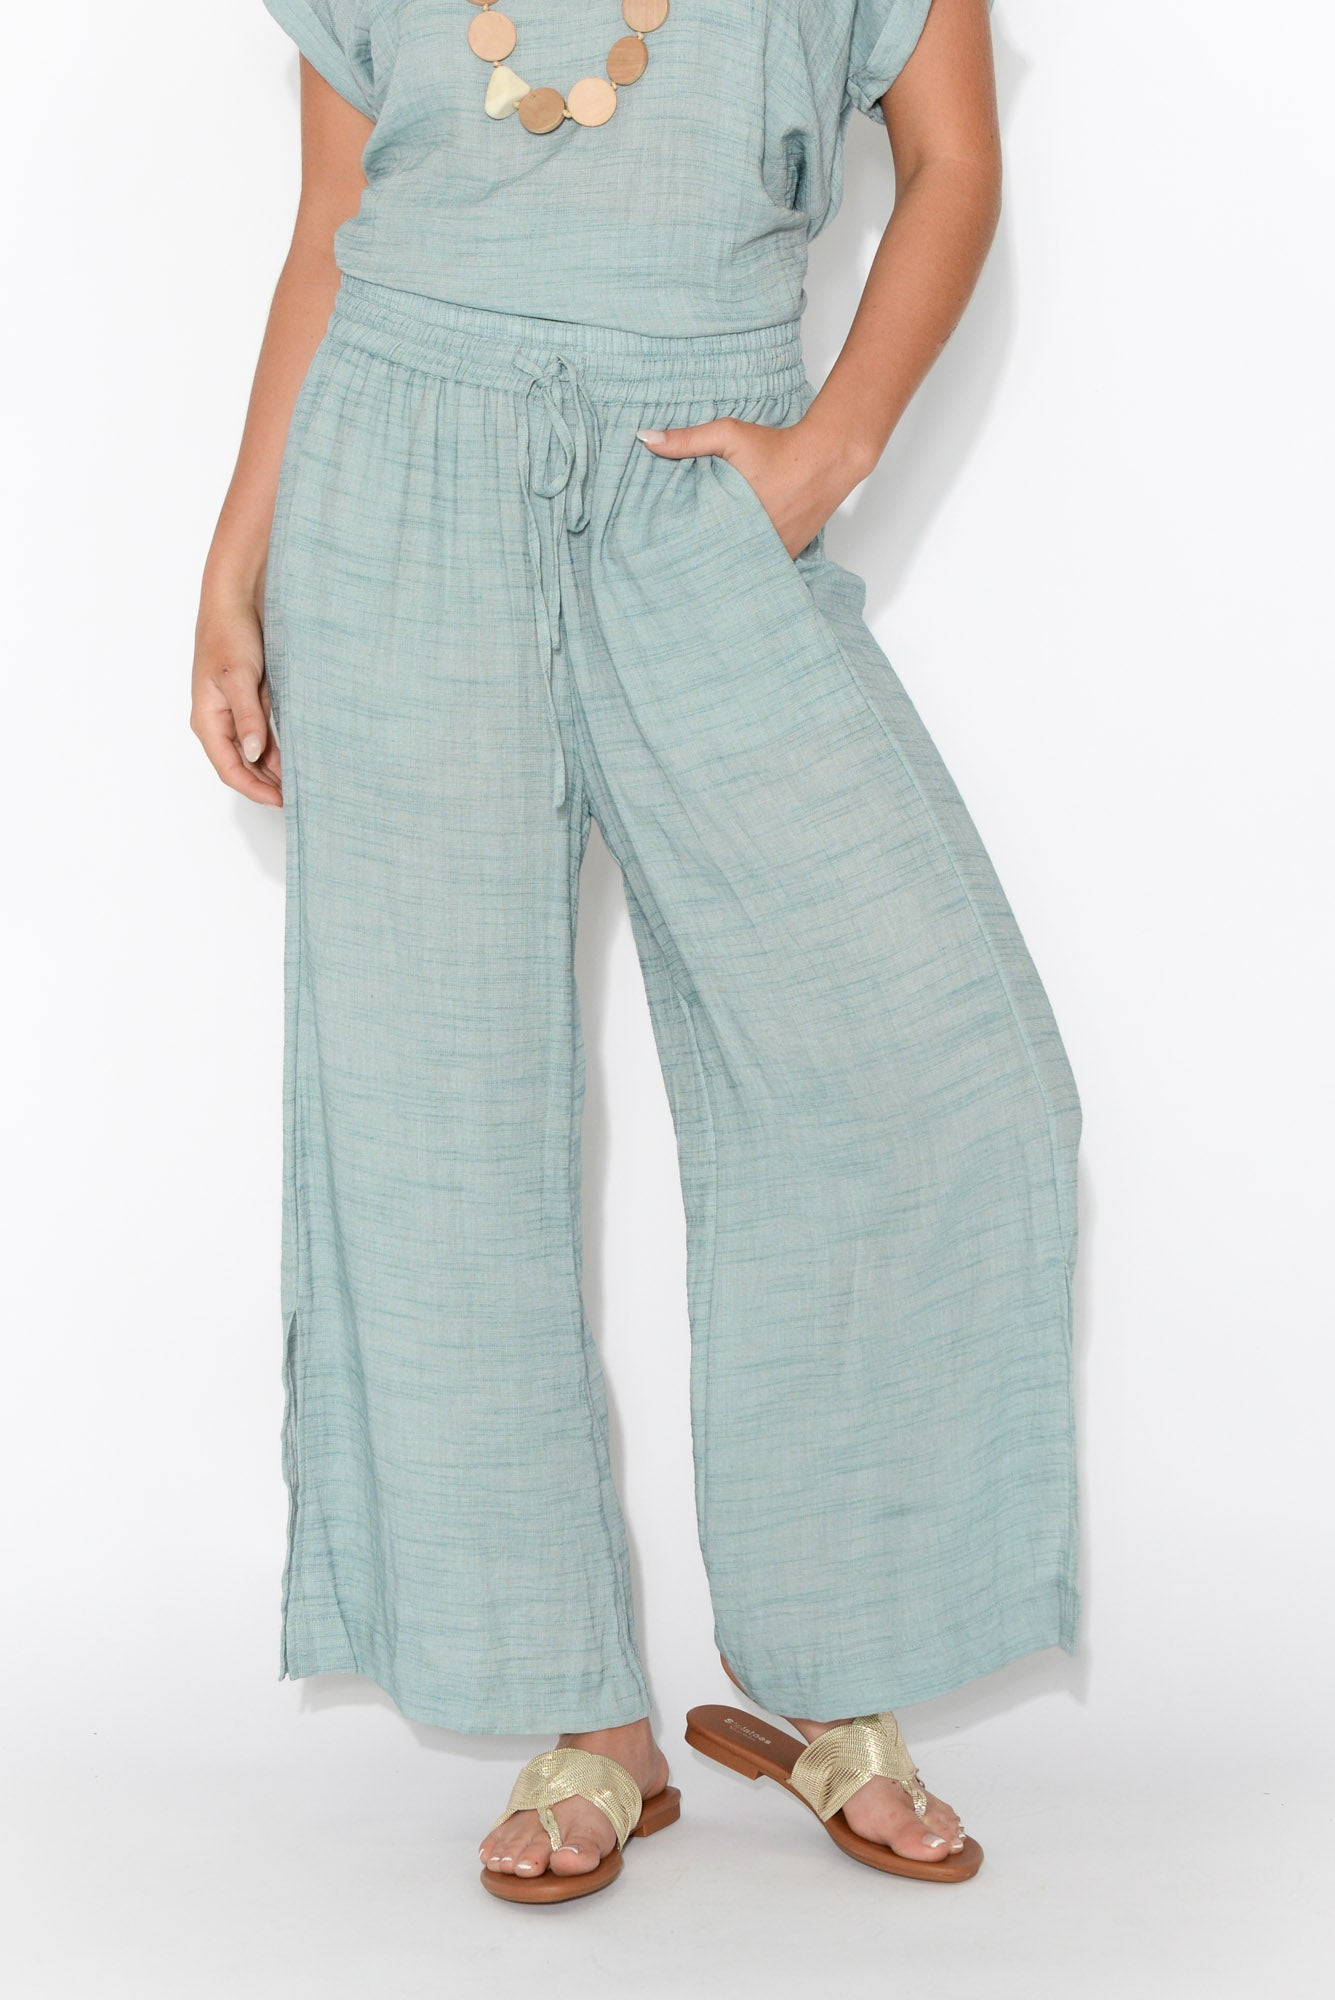 Thelma Blue Wide Leg Pant